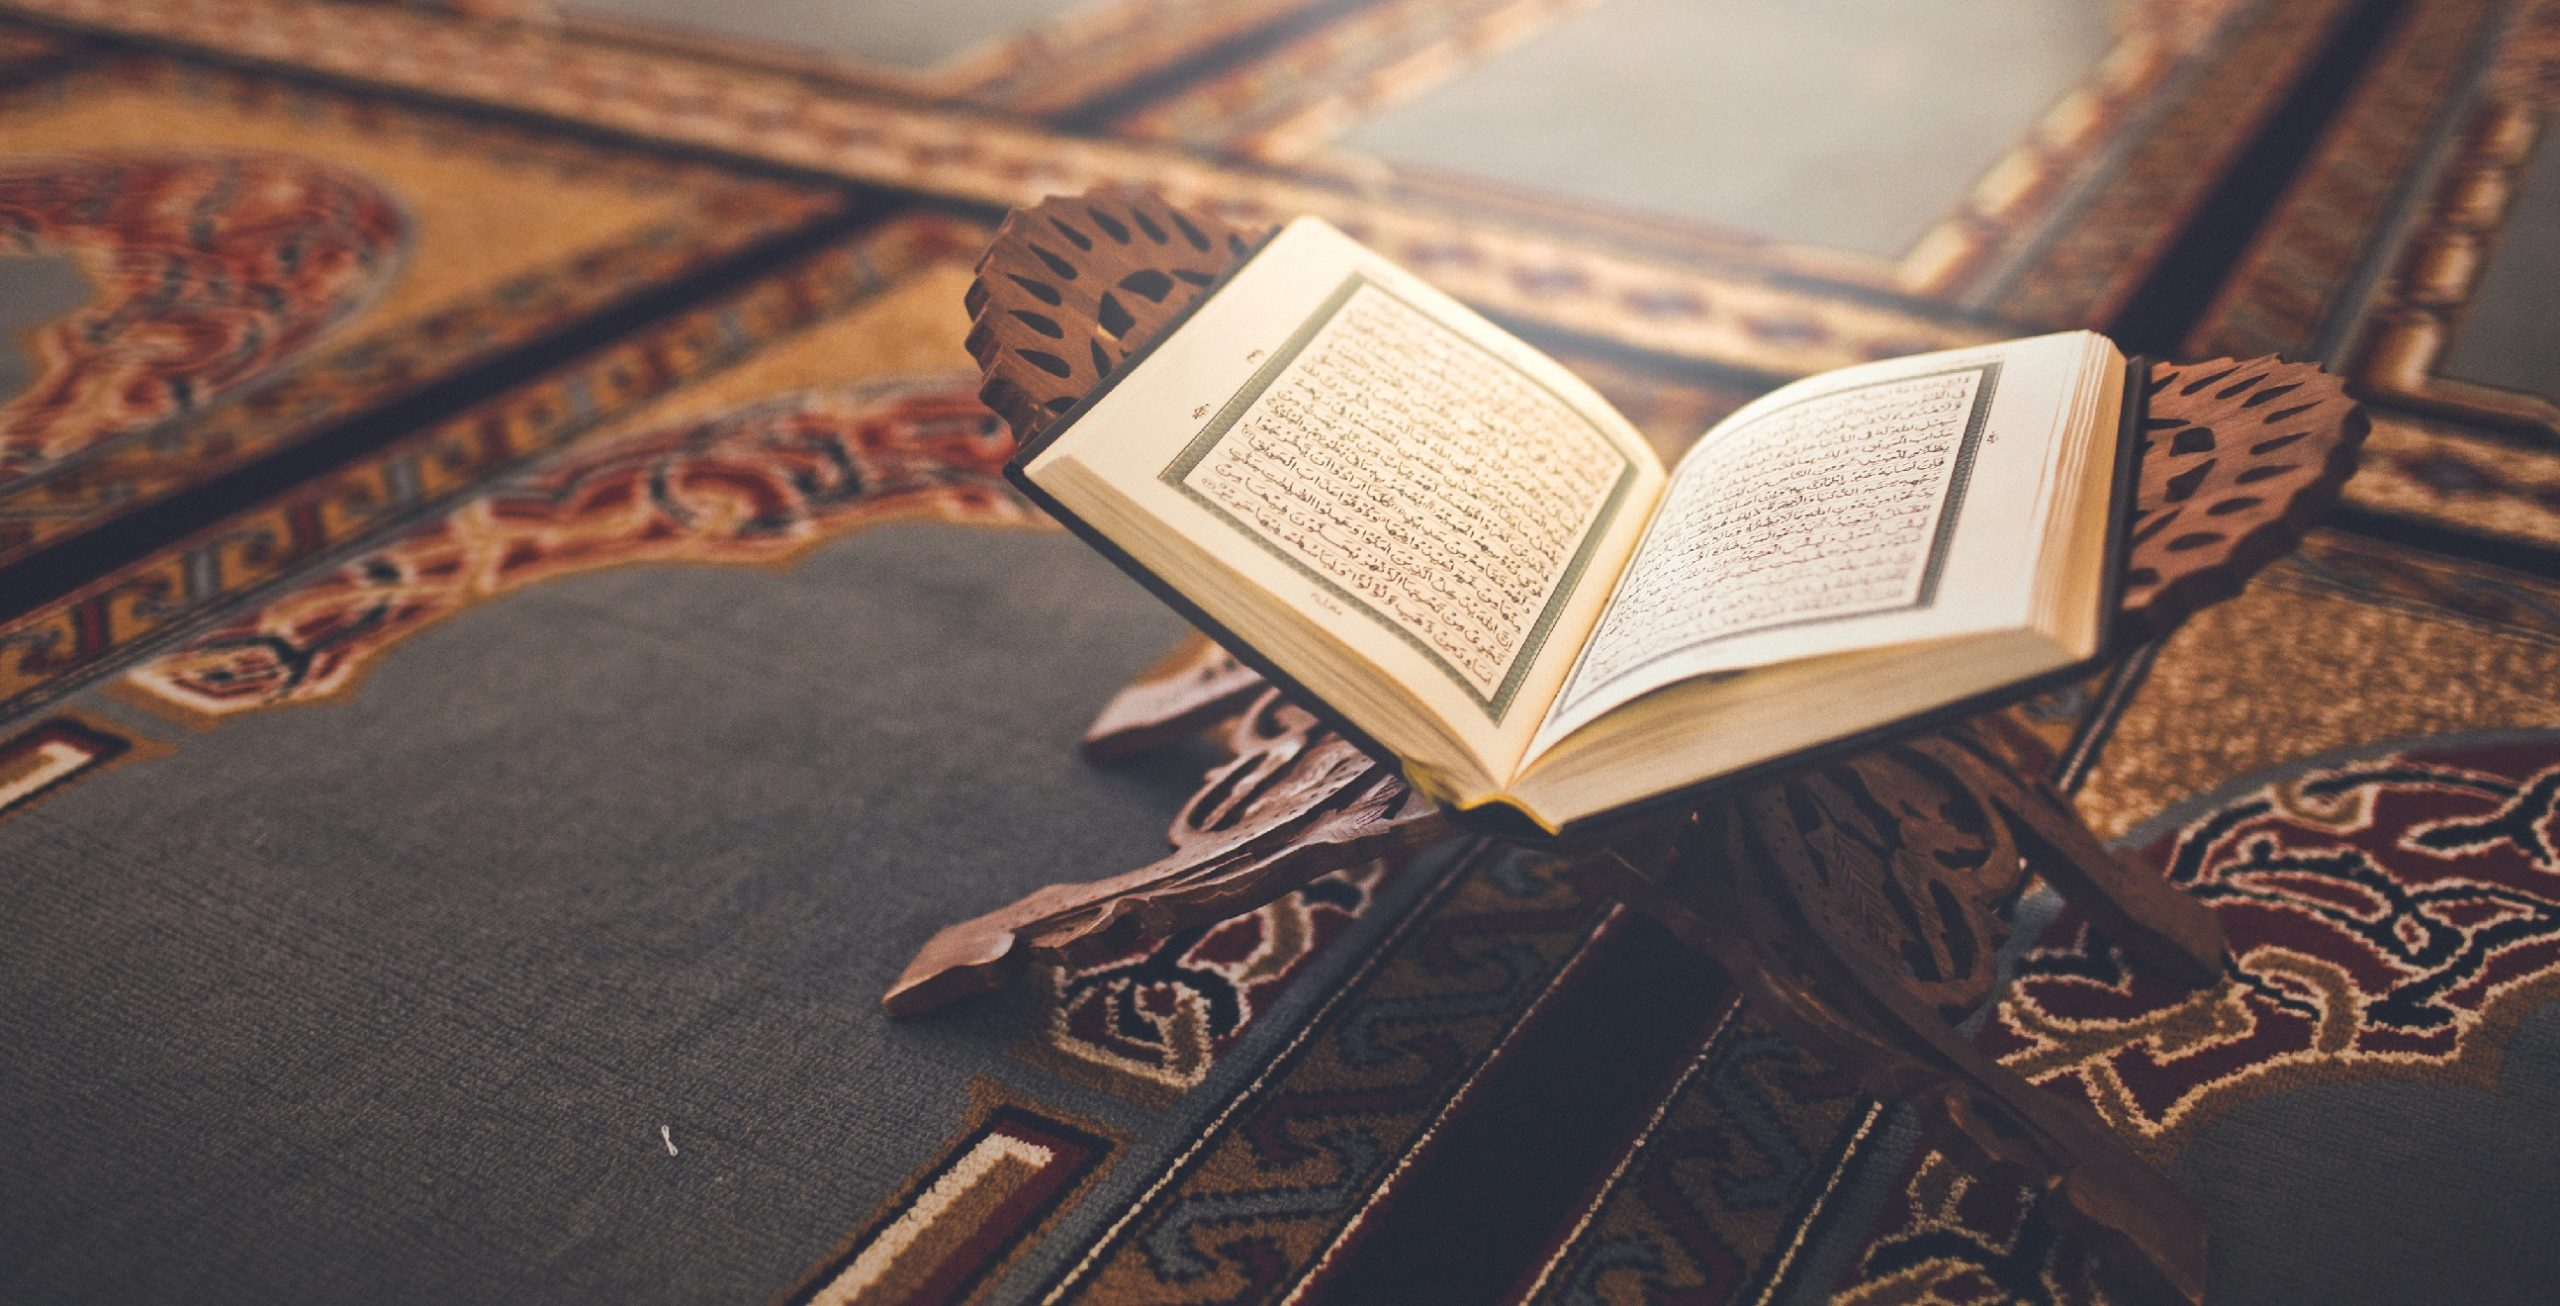 Quran open on stand near mosque floor